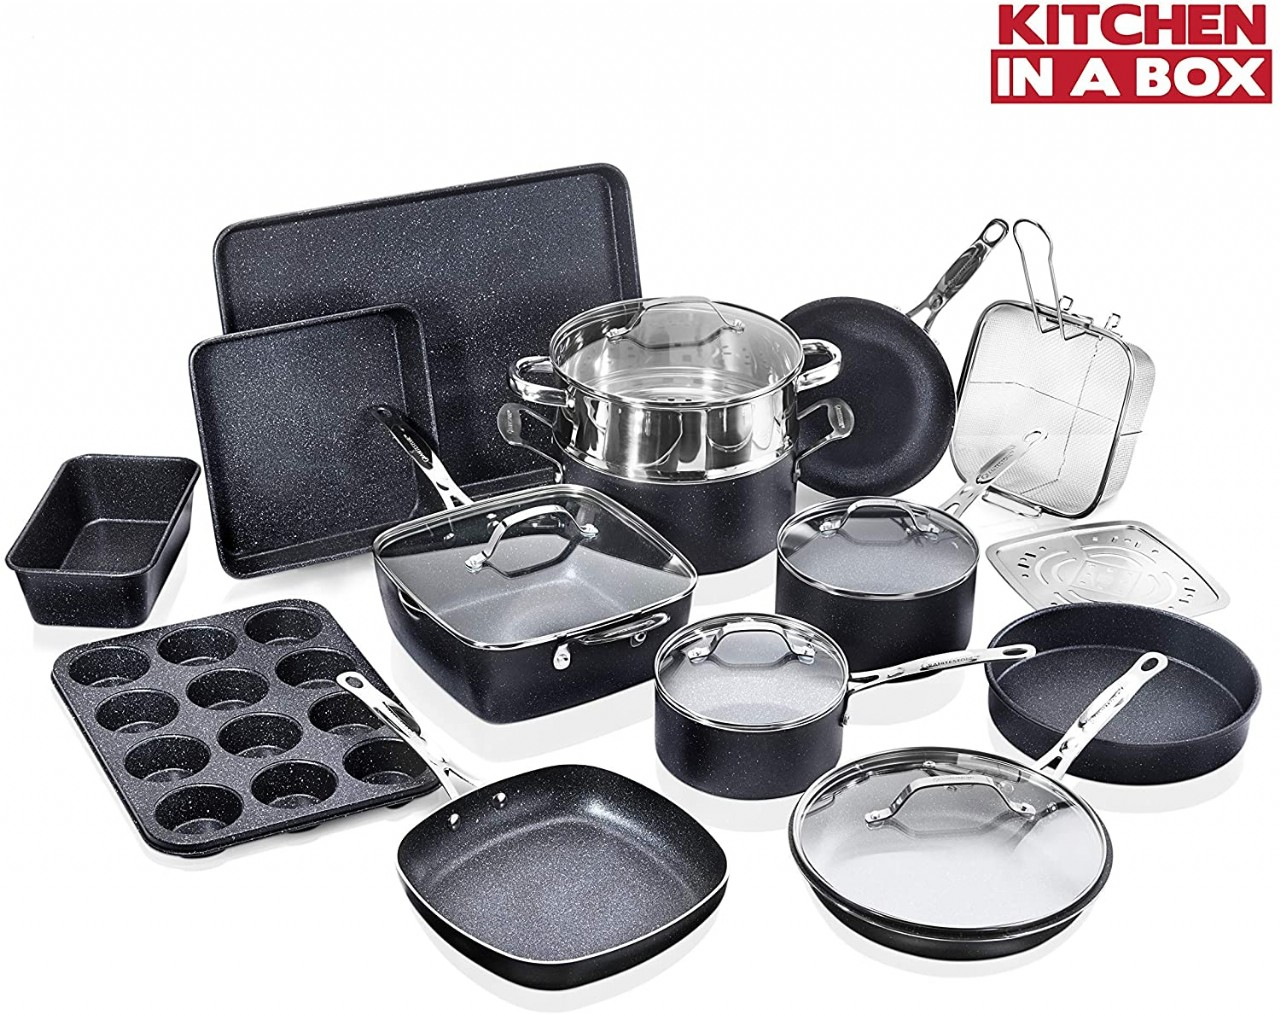 Granite Stone Pots and Pans Set, 20 Piece Complete Cookware + Bakeware Set with Ultra Nonstick 100%